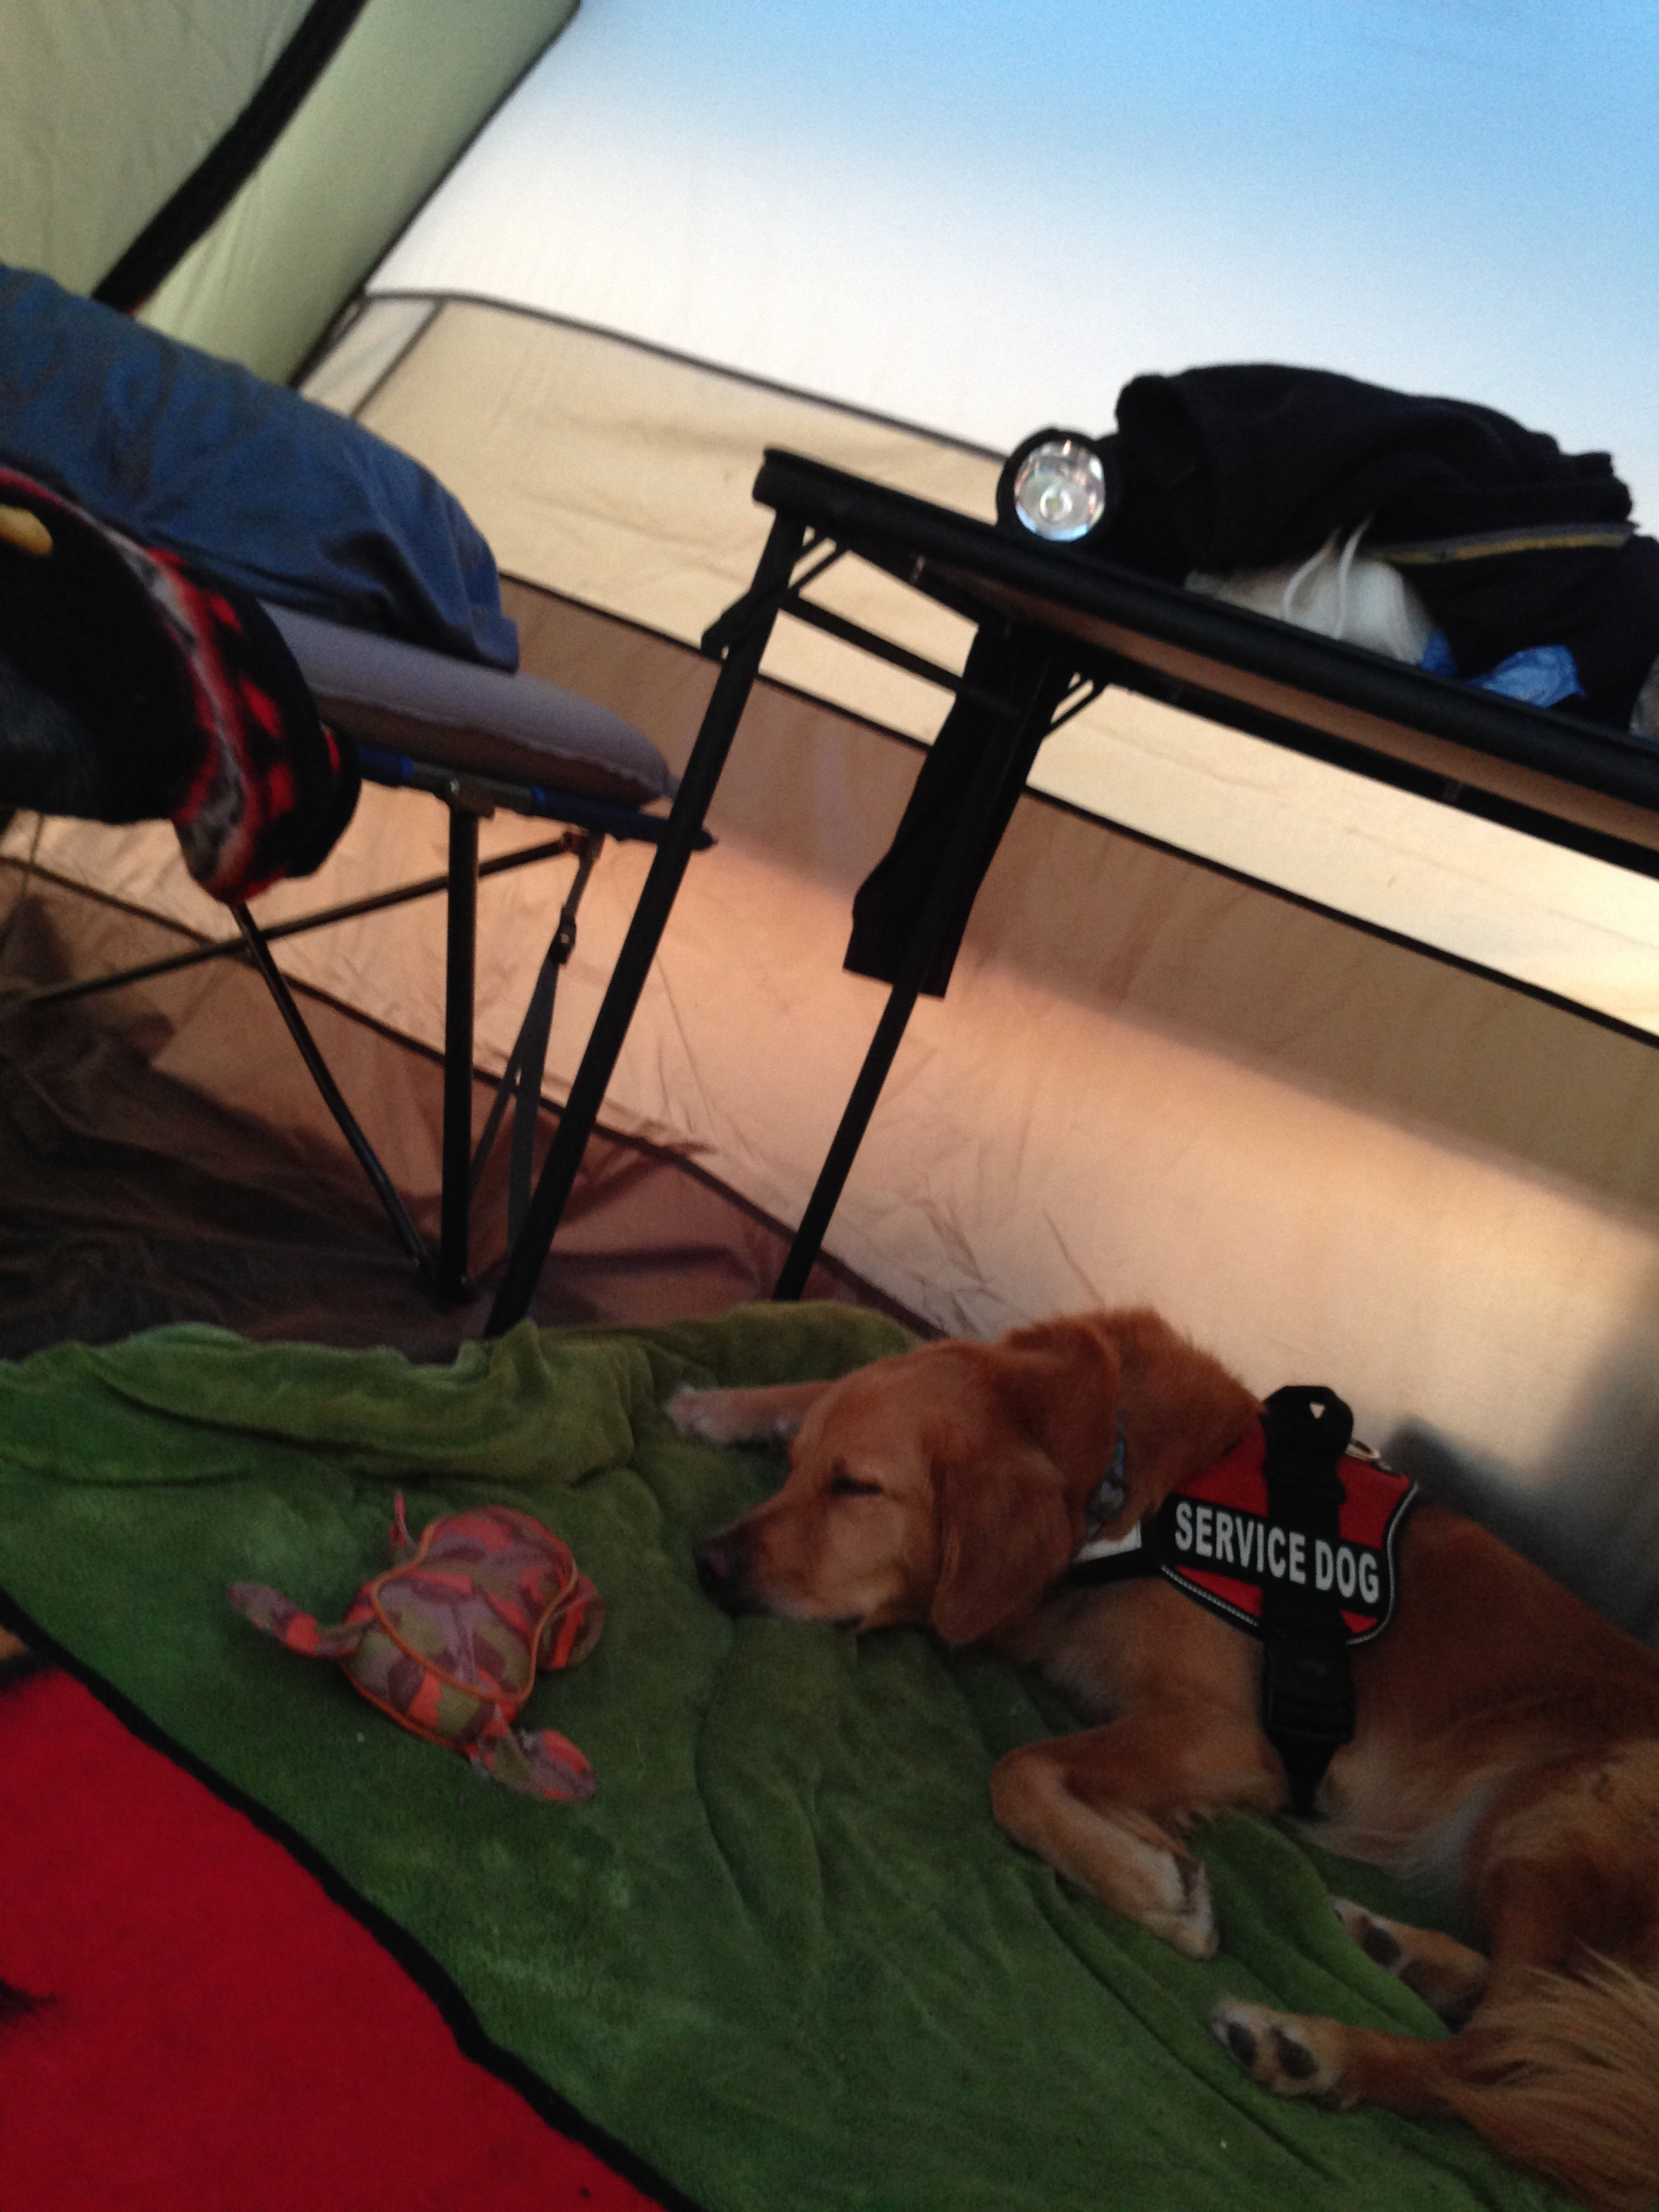 Inside of the BaseCamp6.  I have my dogs bed, my cot, luggage, spearfishing gear, surfing gear, and back packing/ascent gear.   And my dogs stuffed animal.